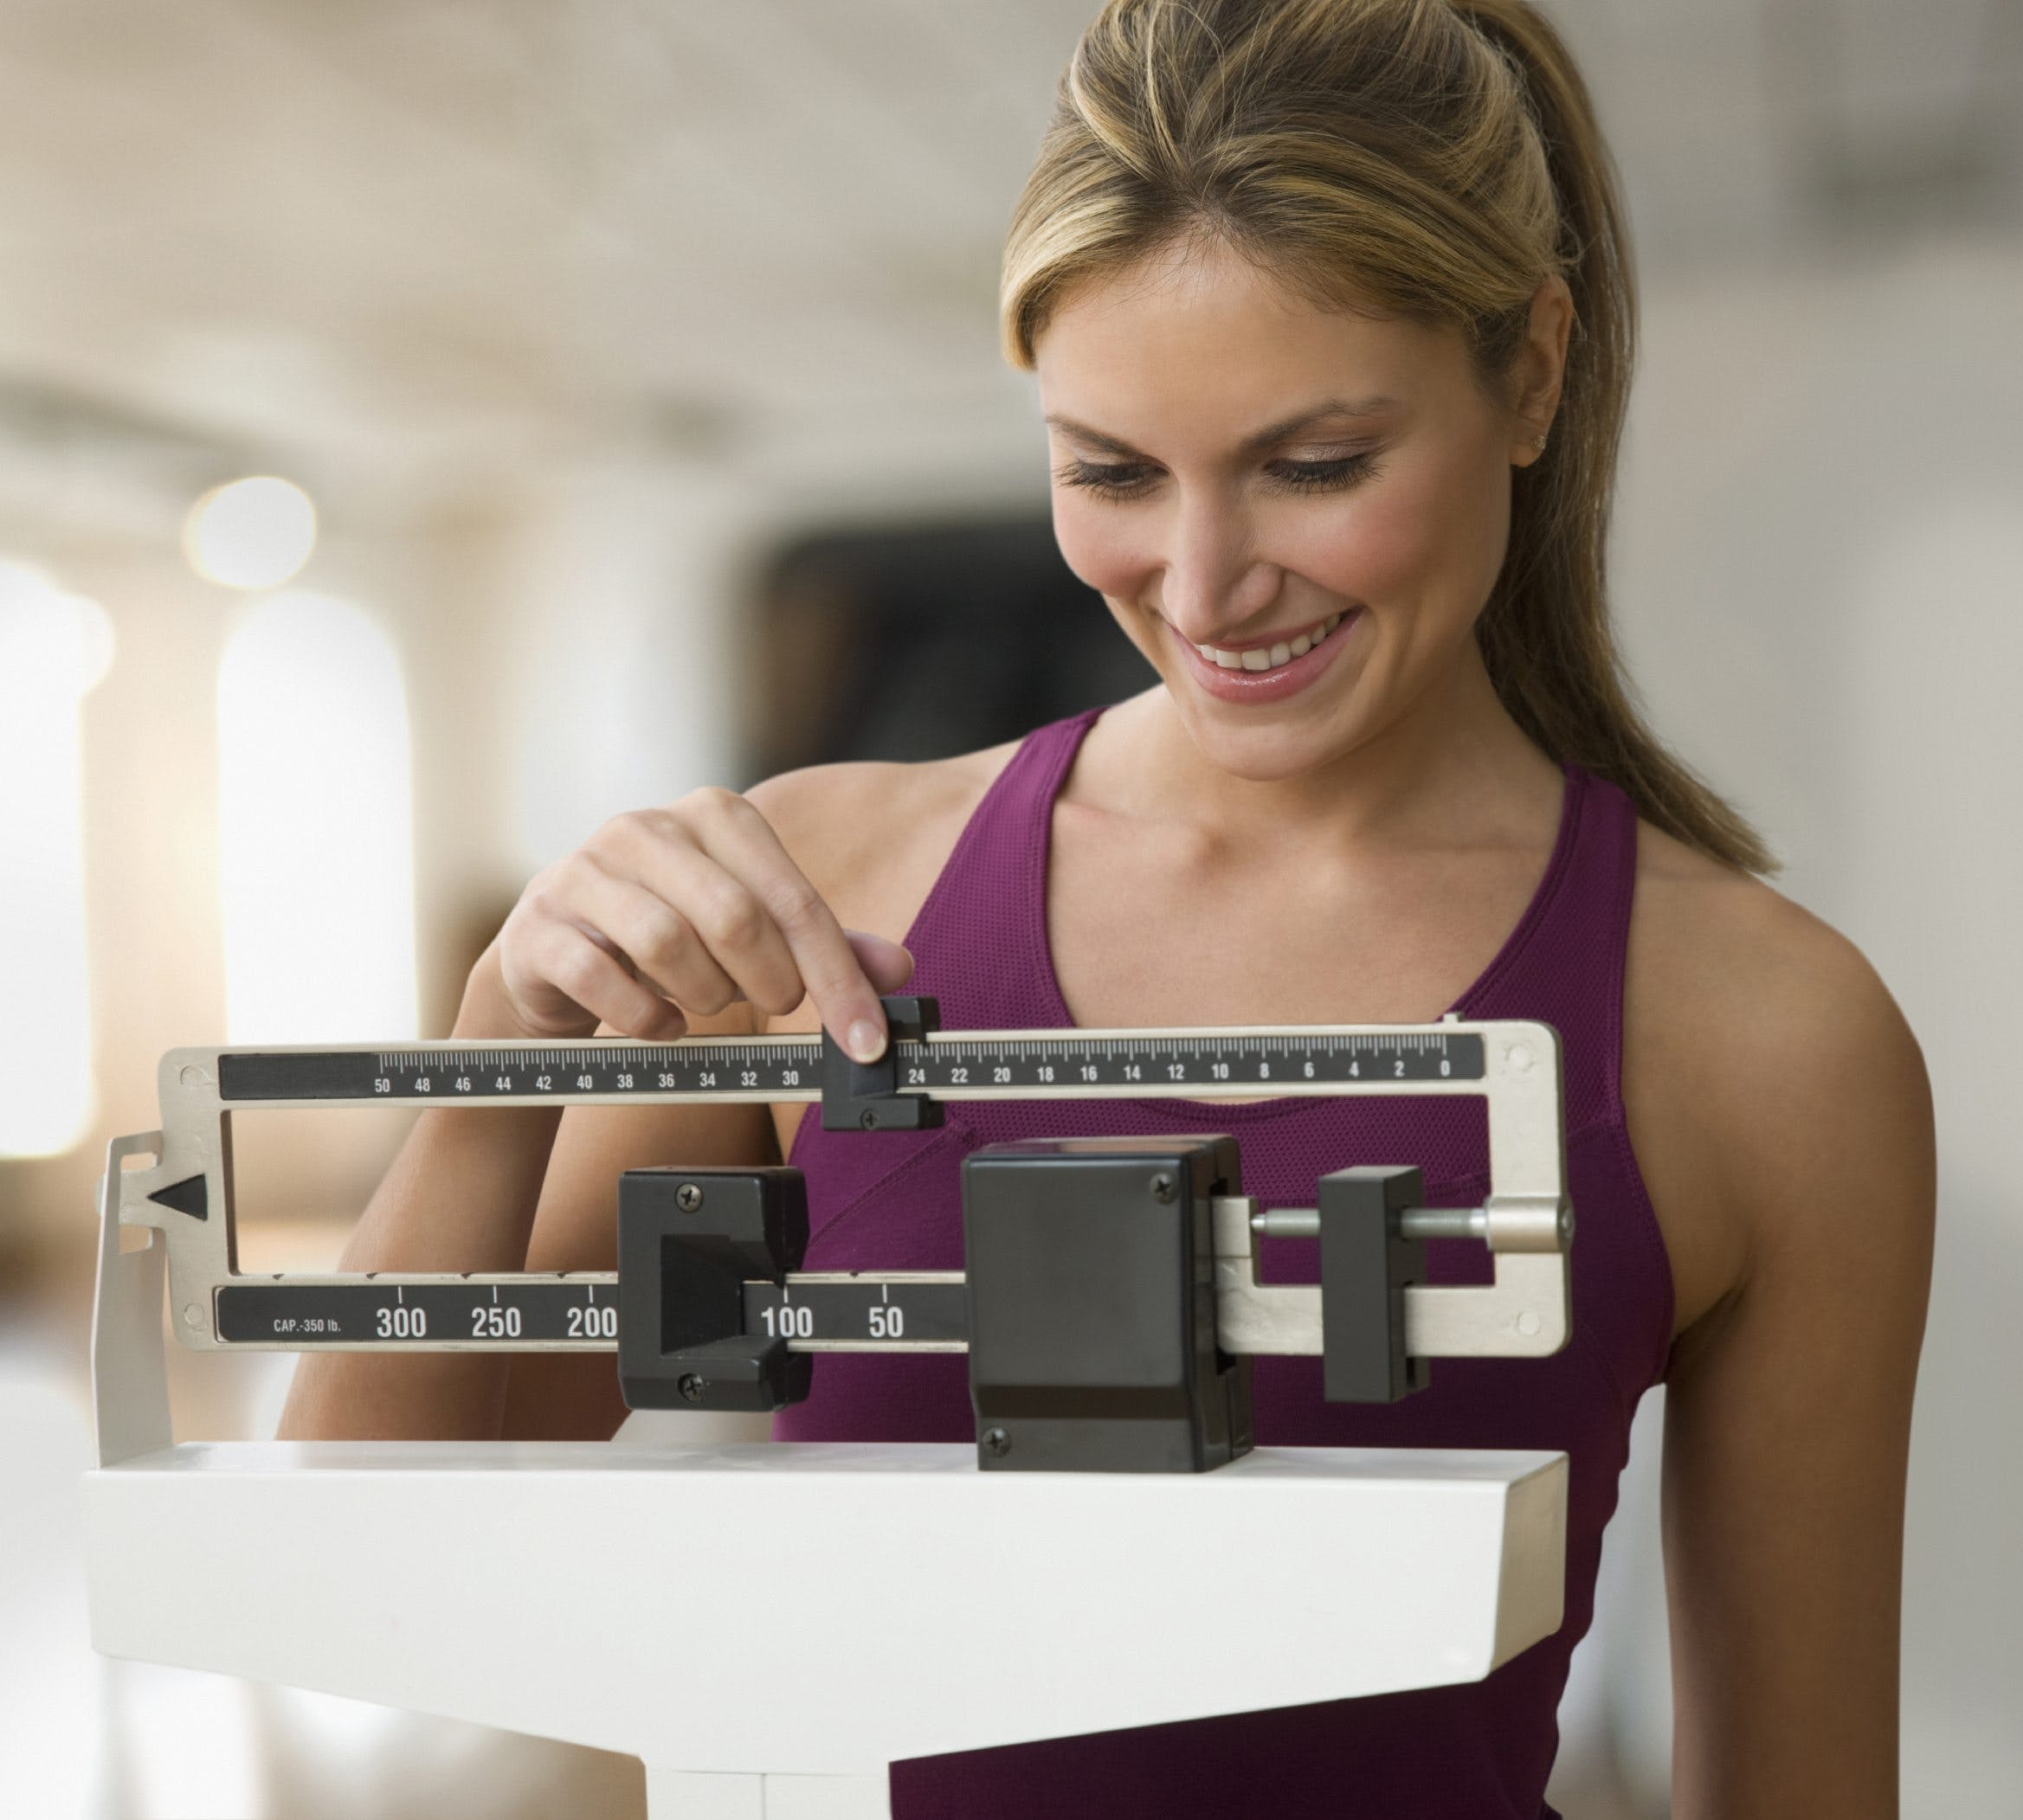 Low-carb diet best for weight loss, according to yet another new review